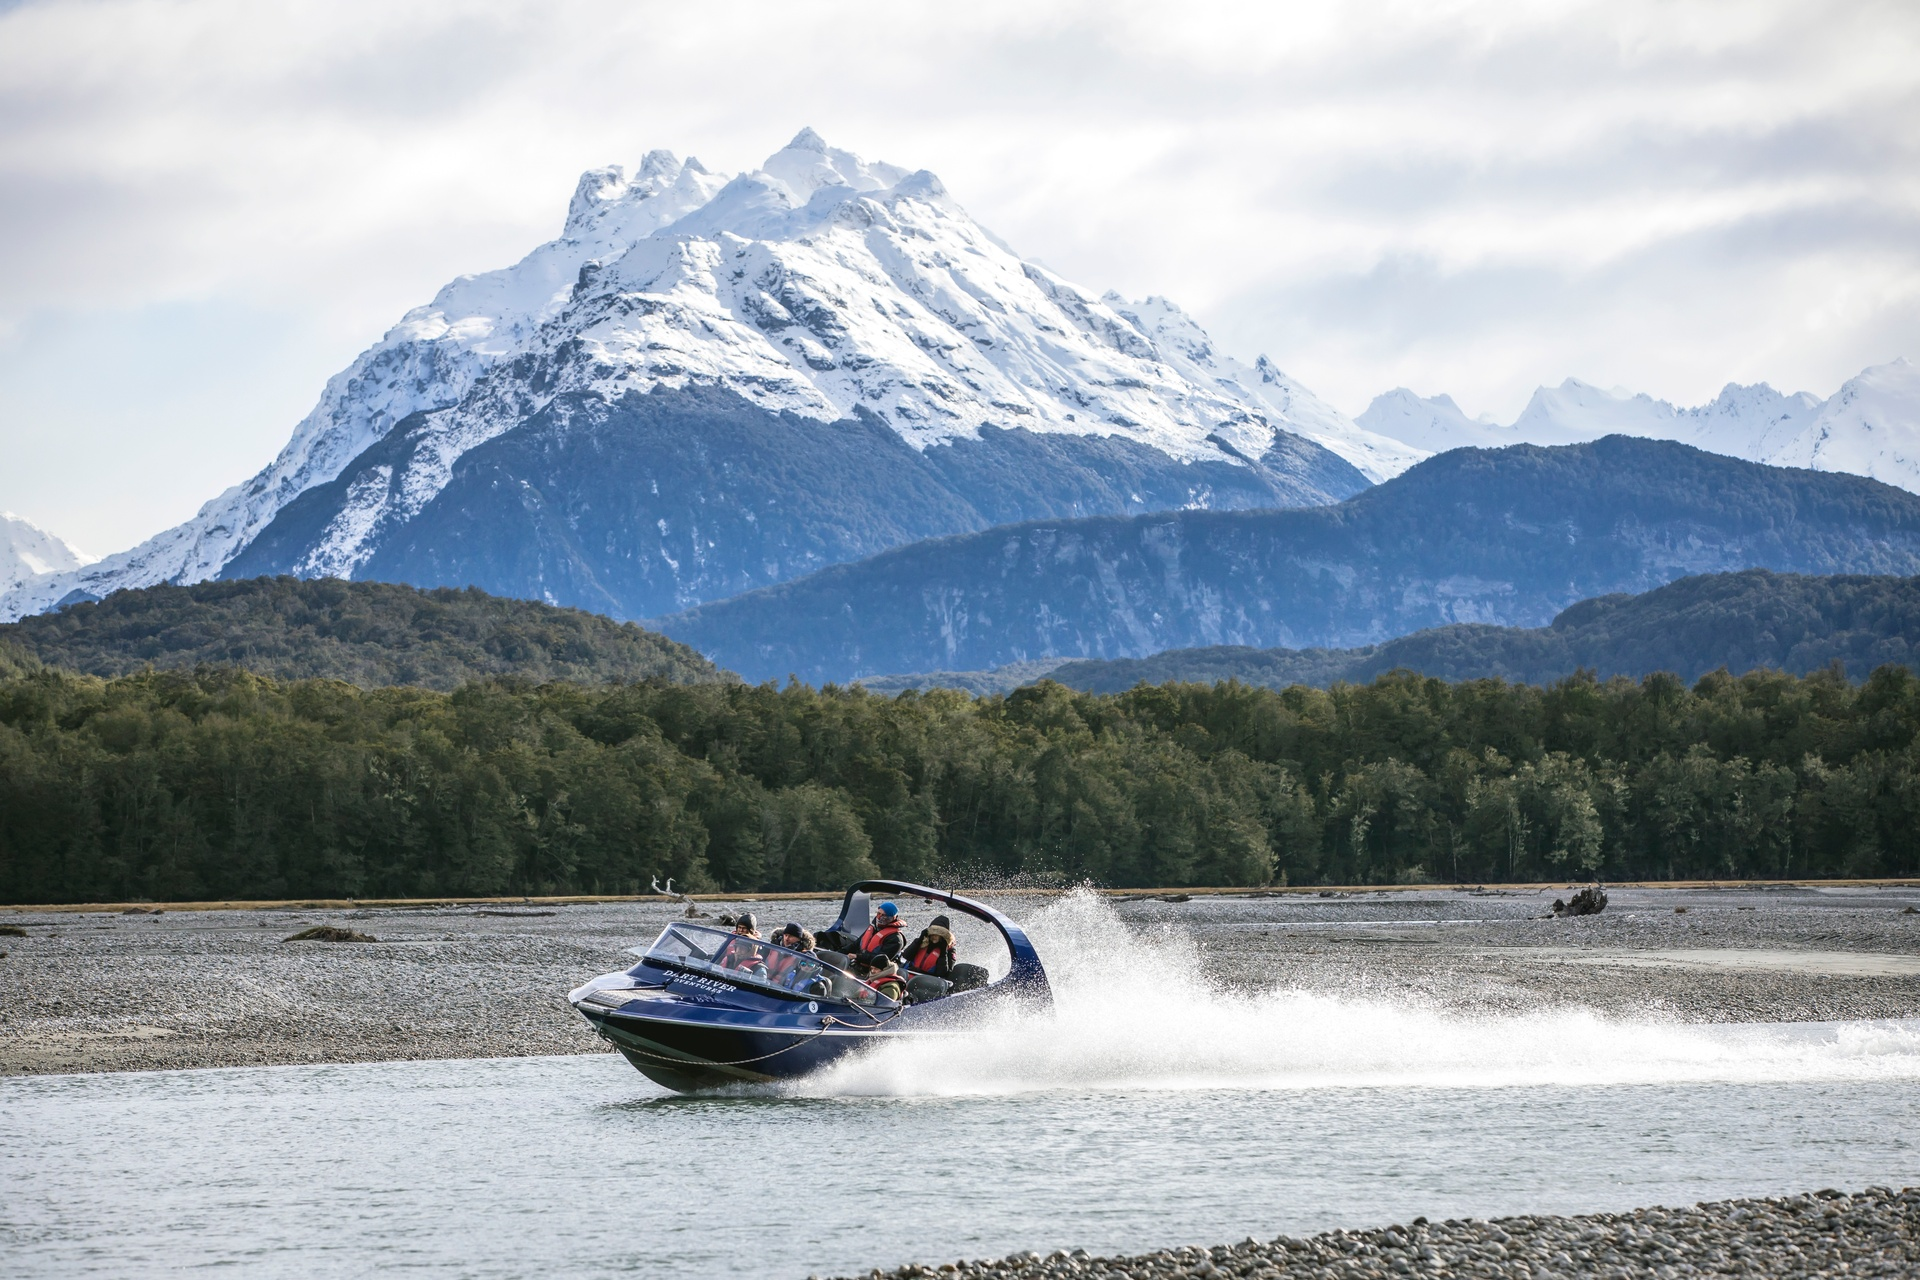 Jetboating at Glenorchy near Queenstown. Pic courtesy Miles Holden and TNZ